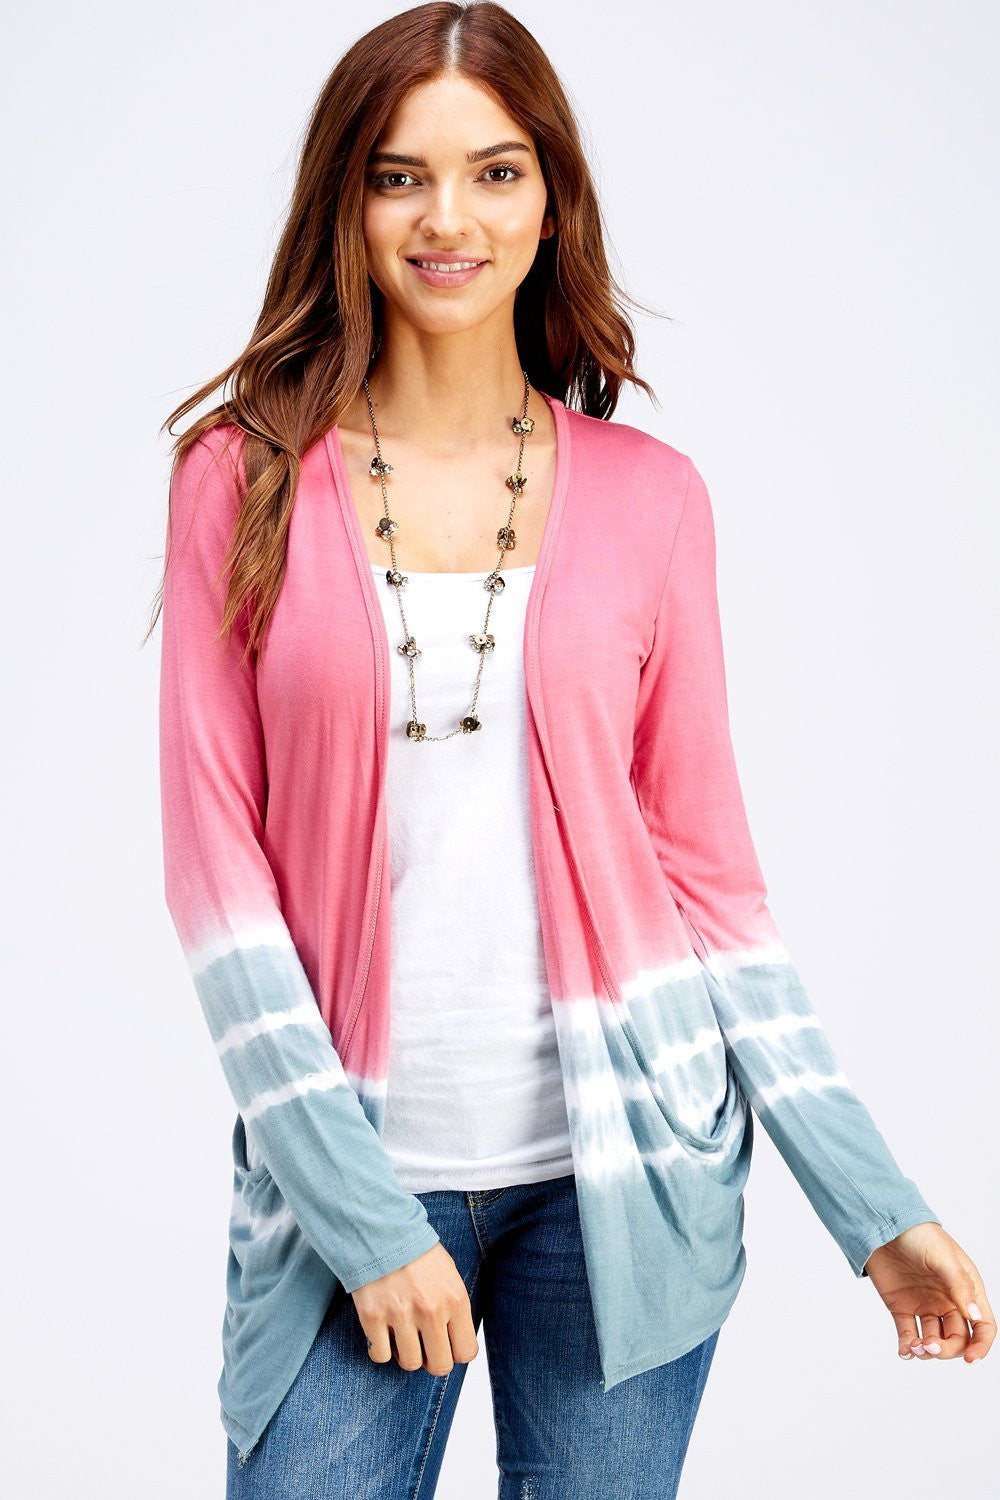 Wholesale Clothing, Online Wholesale Clothing, Women Clothing, Bohemian, Free People, tiedye, specialty wash, wholesale seller, wholesale women clothing shop, gypsy look, USA made, URBAN X APPAREL-CARDIGANS-UCR3187PG, fashiontrend2019